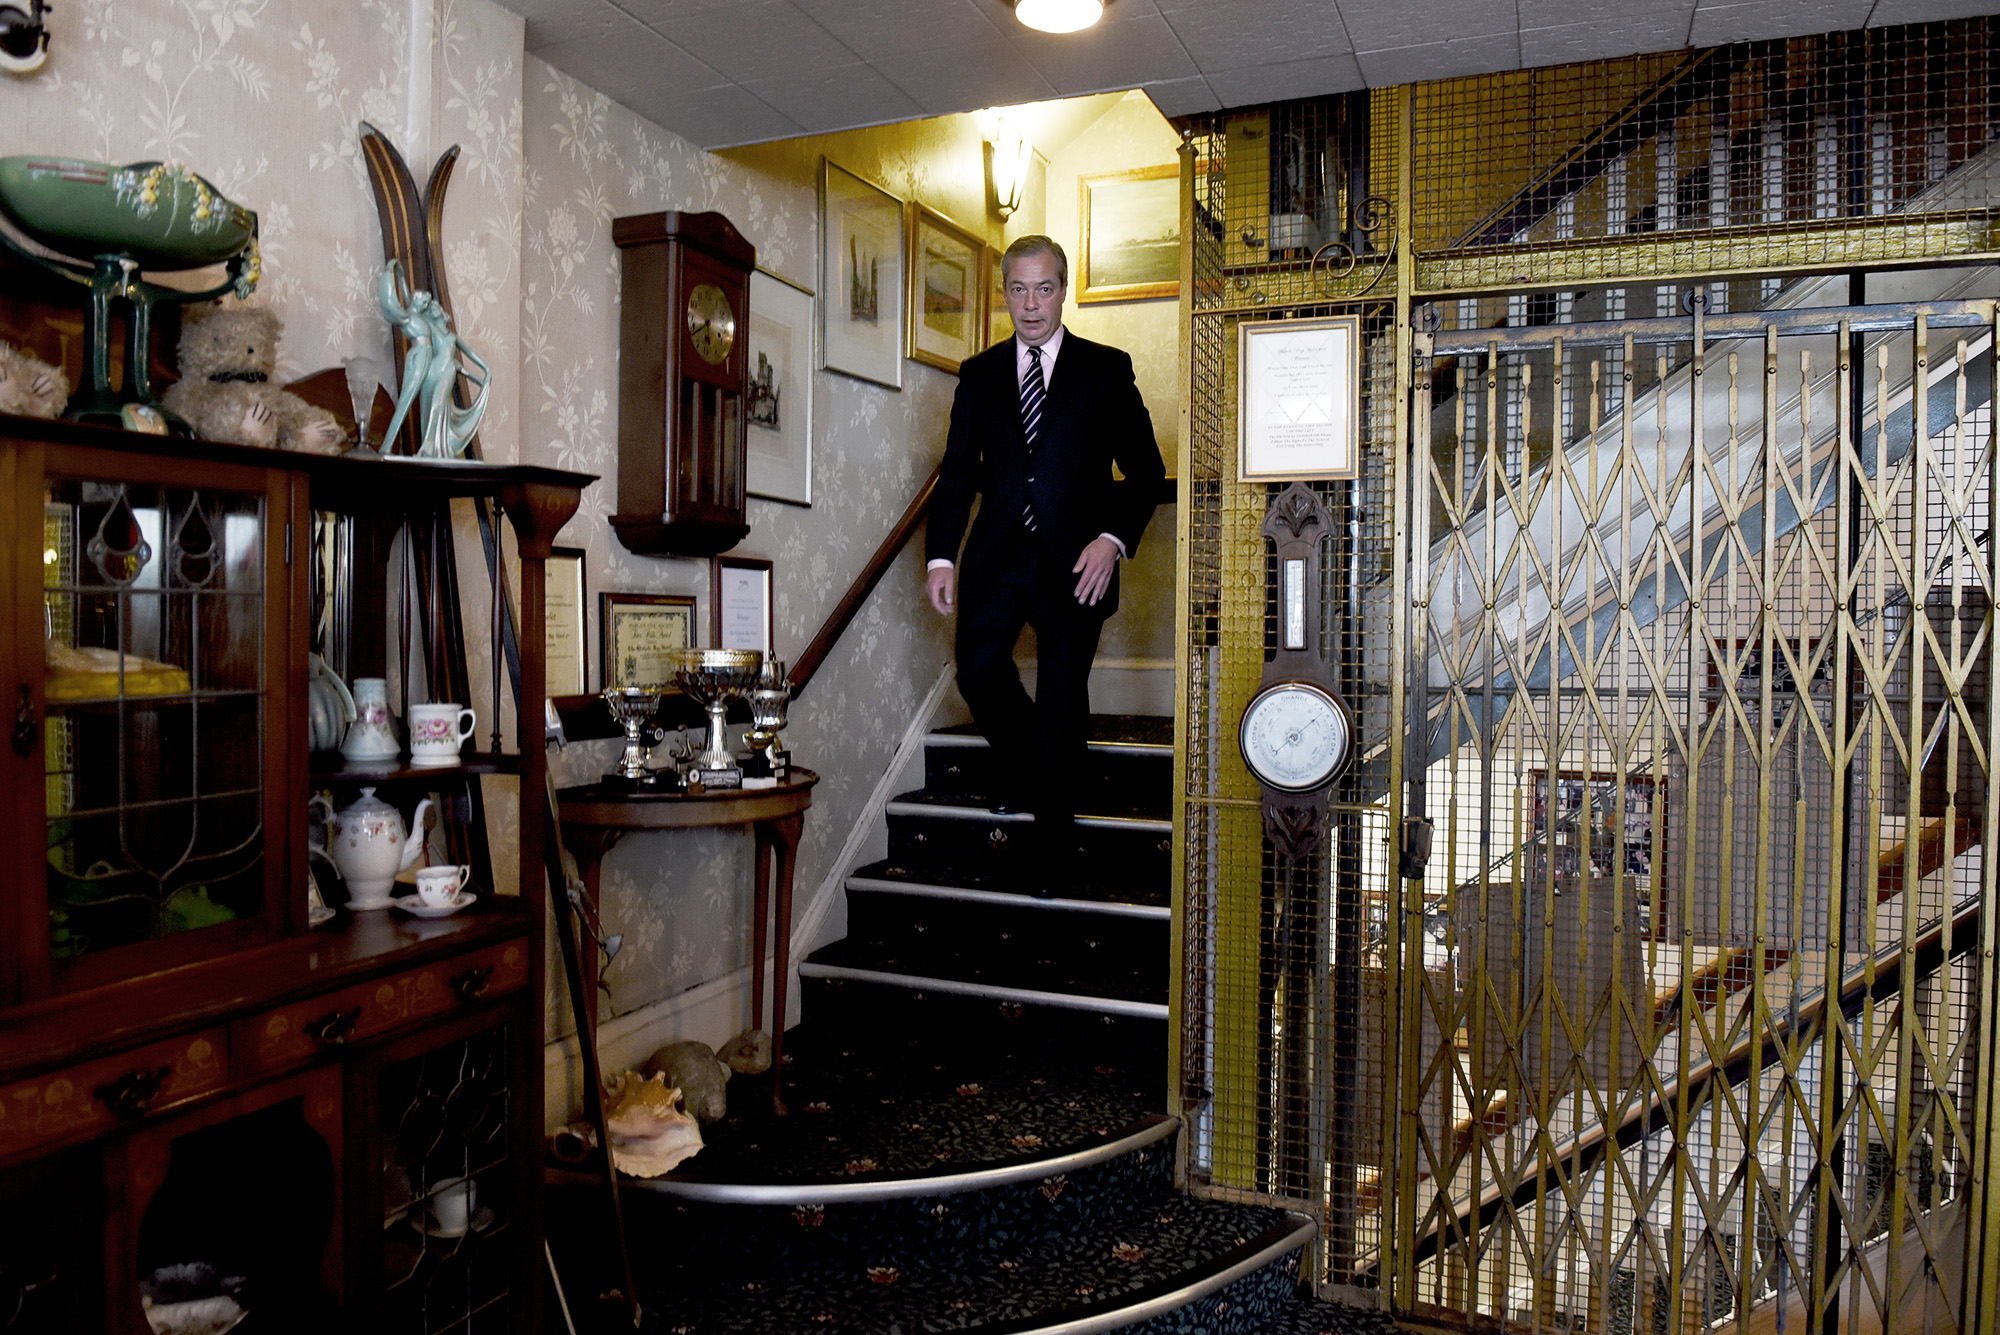 Nigel Farage descends the stairs of the Walpole Bay Hotel where he spent the night of the election count as it became apparent that he would not win the South Thanet seat. May 8th 2015